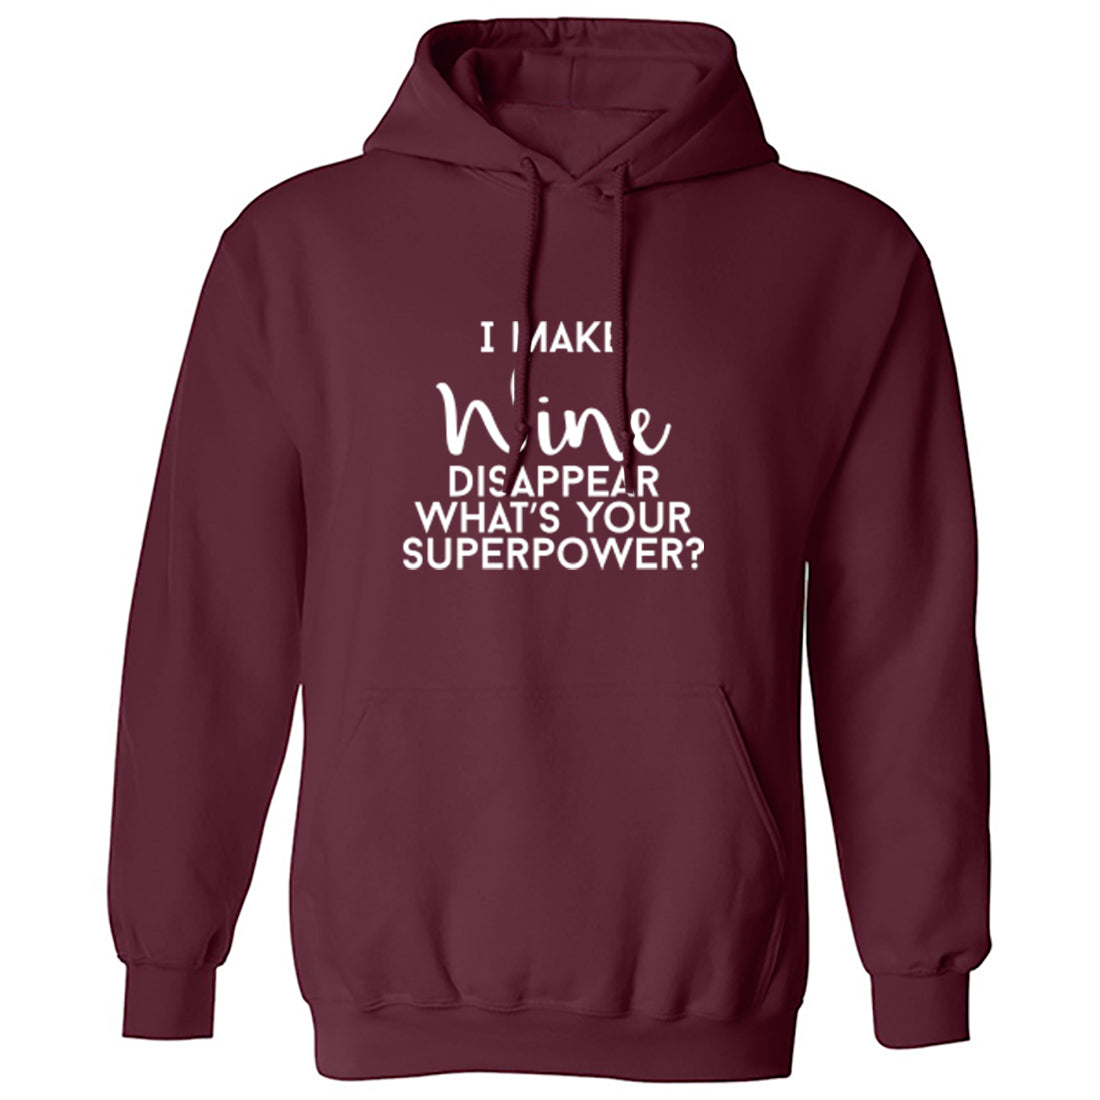 I Make Wine Disappear What's Your Superpower? Unisex Hoodie K1570 - Illustrated Identity Ltd.